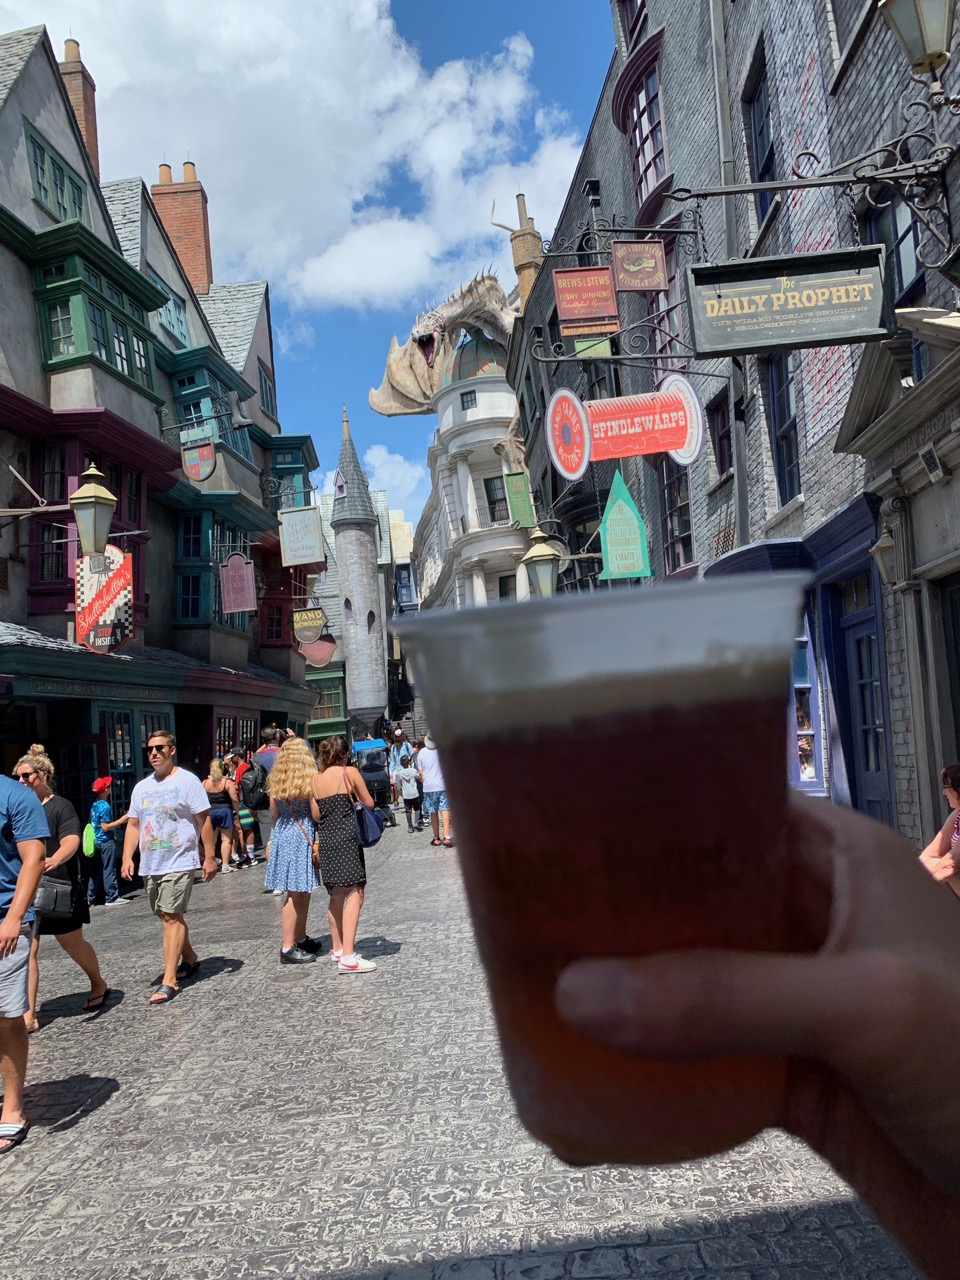 universal studios florida one day plan itinerary 12 diagon alley.jpeg